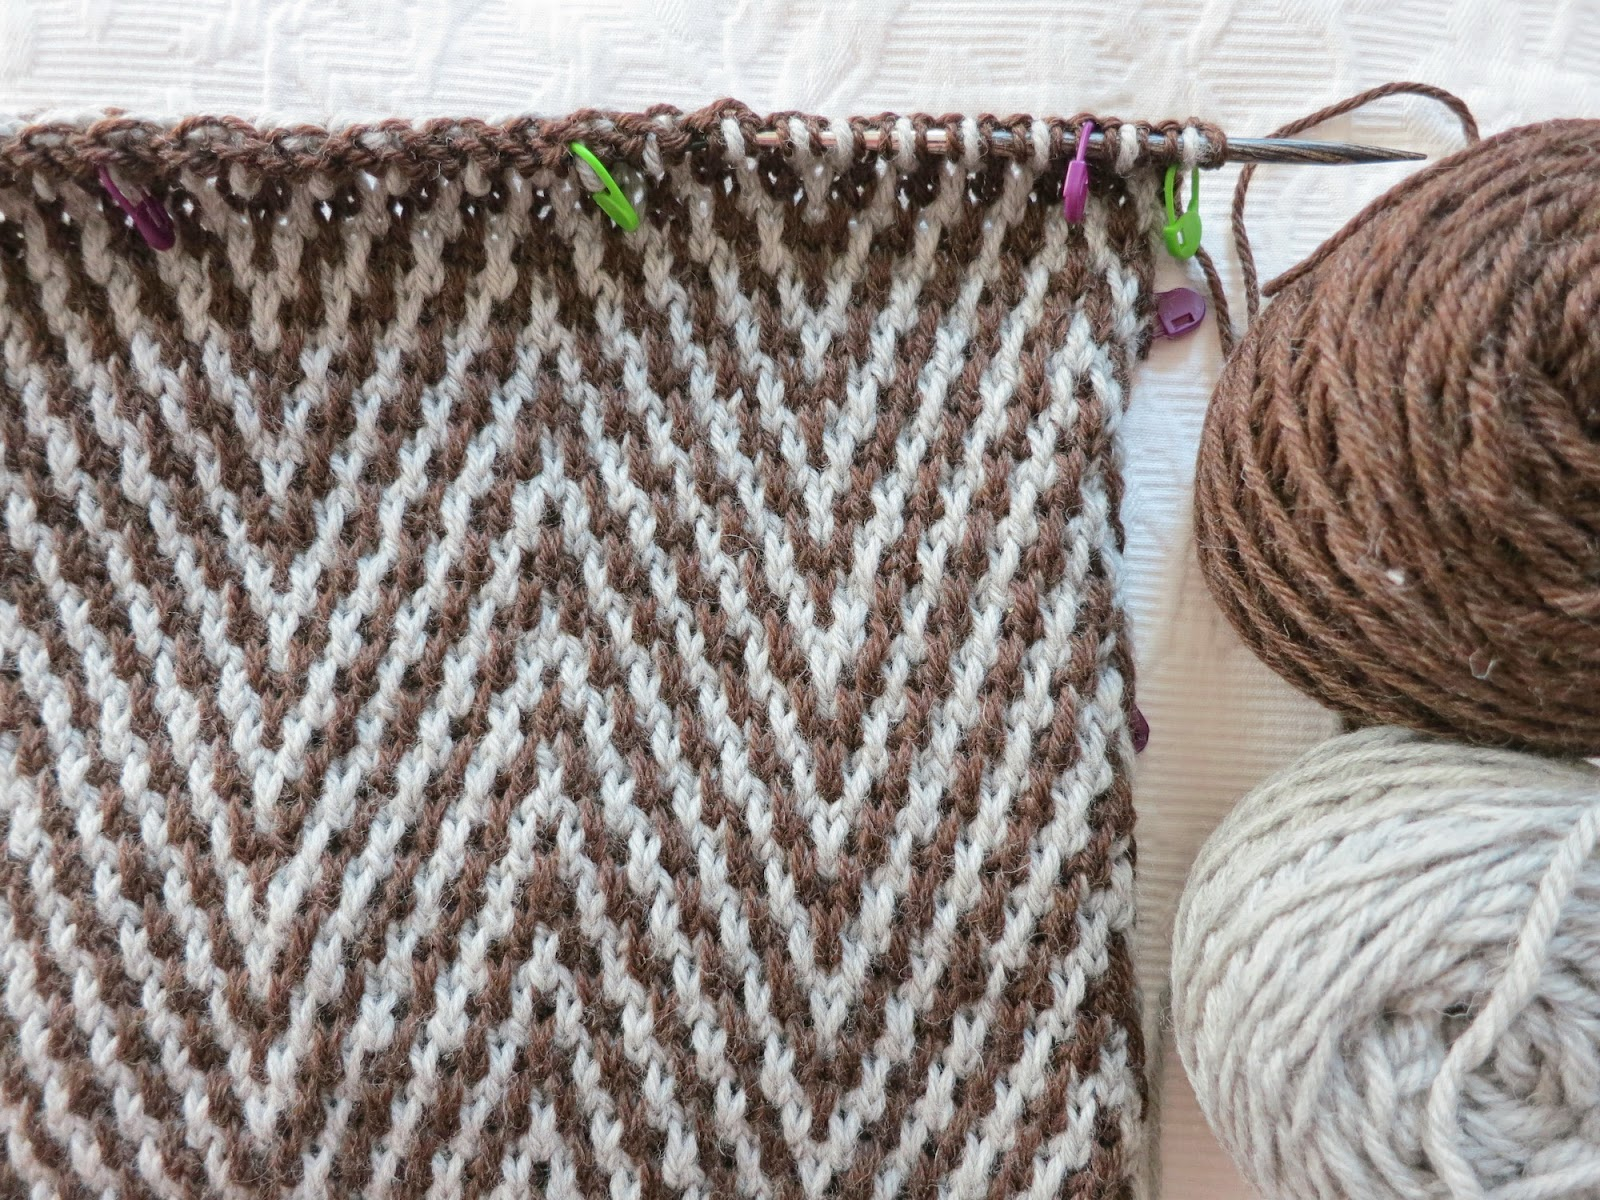 Chocolate à chuva: on mosaic knitting